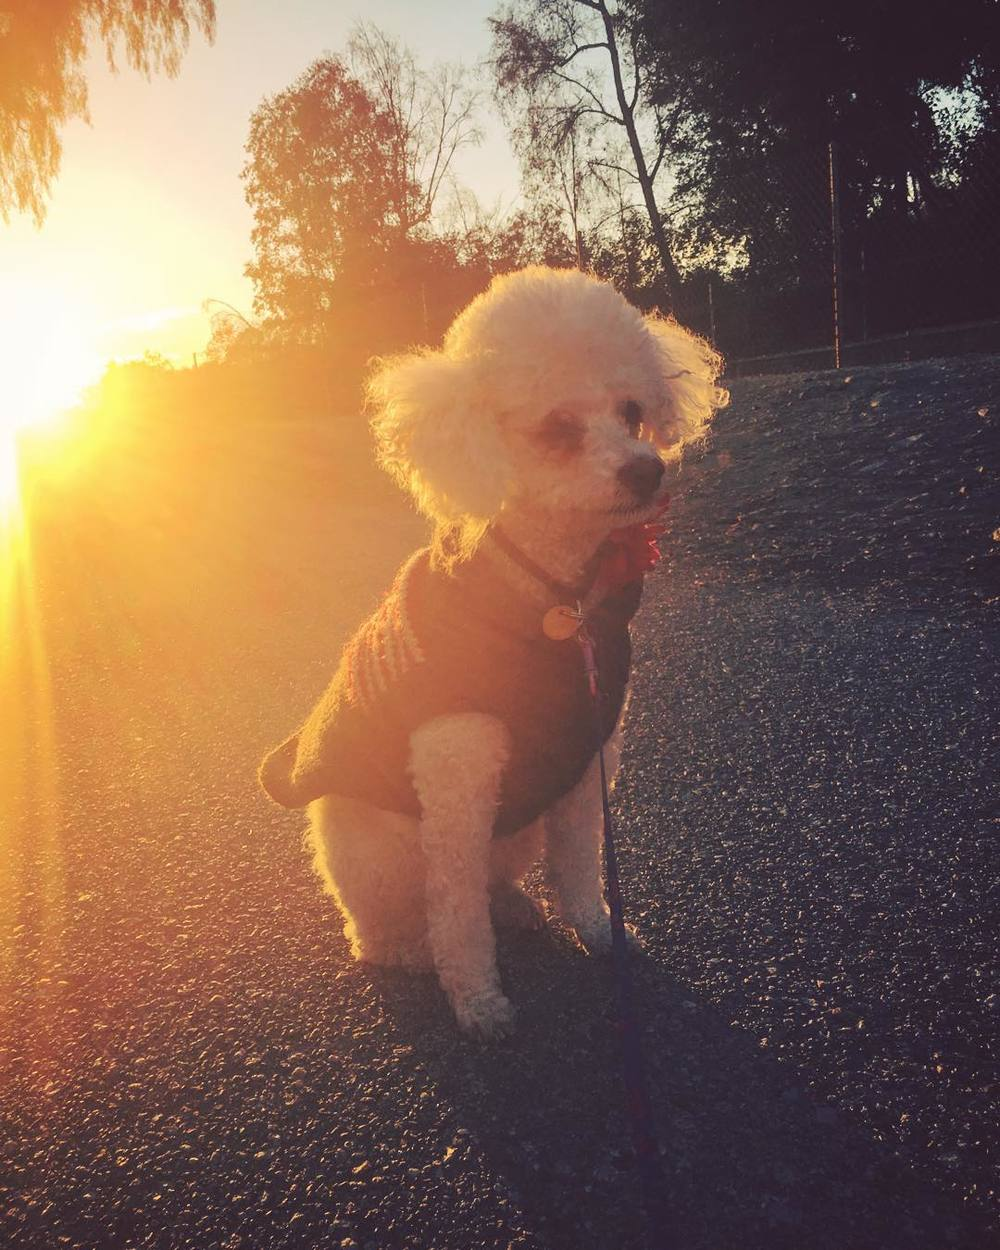 when-you-come-across-the-dreamiest-sunset-and-dont-have-a-model-but-know-its-your-civic-duty-as-a-photographer-to-not-let-that-golden-light-go-to-waste-your-dogs-fill-in-as-models-330365-mimi-unleashed-dogsofinstagram-poodle-fluff_23337186889_o.jpg